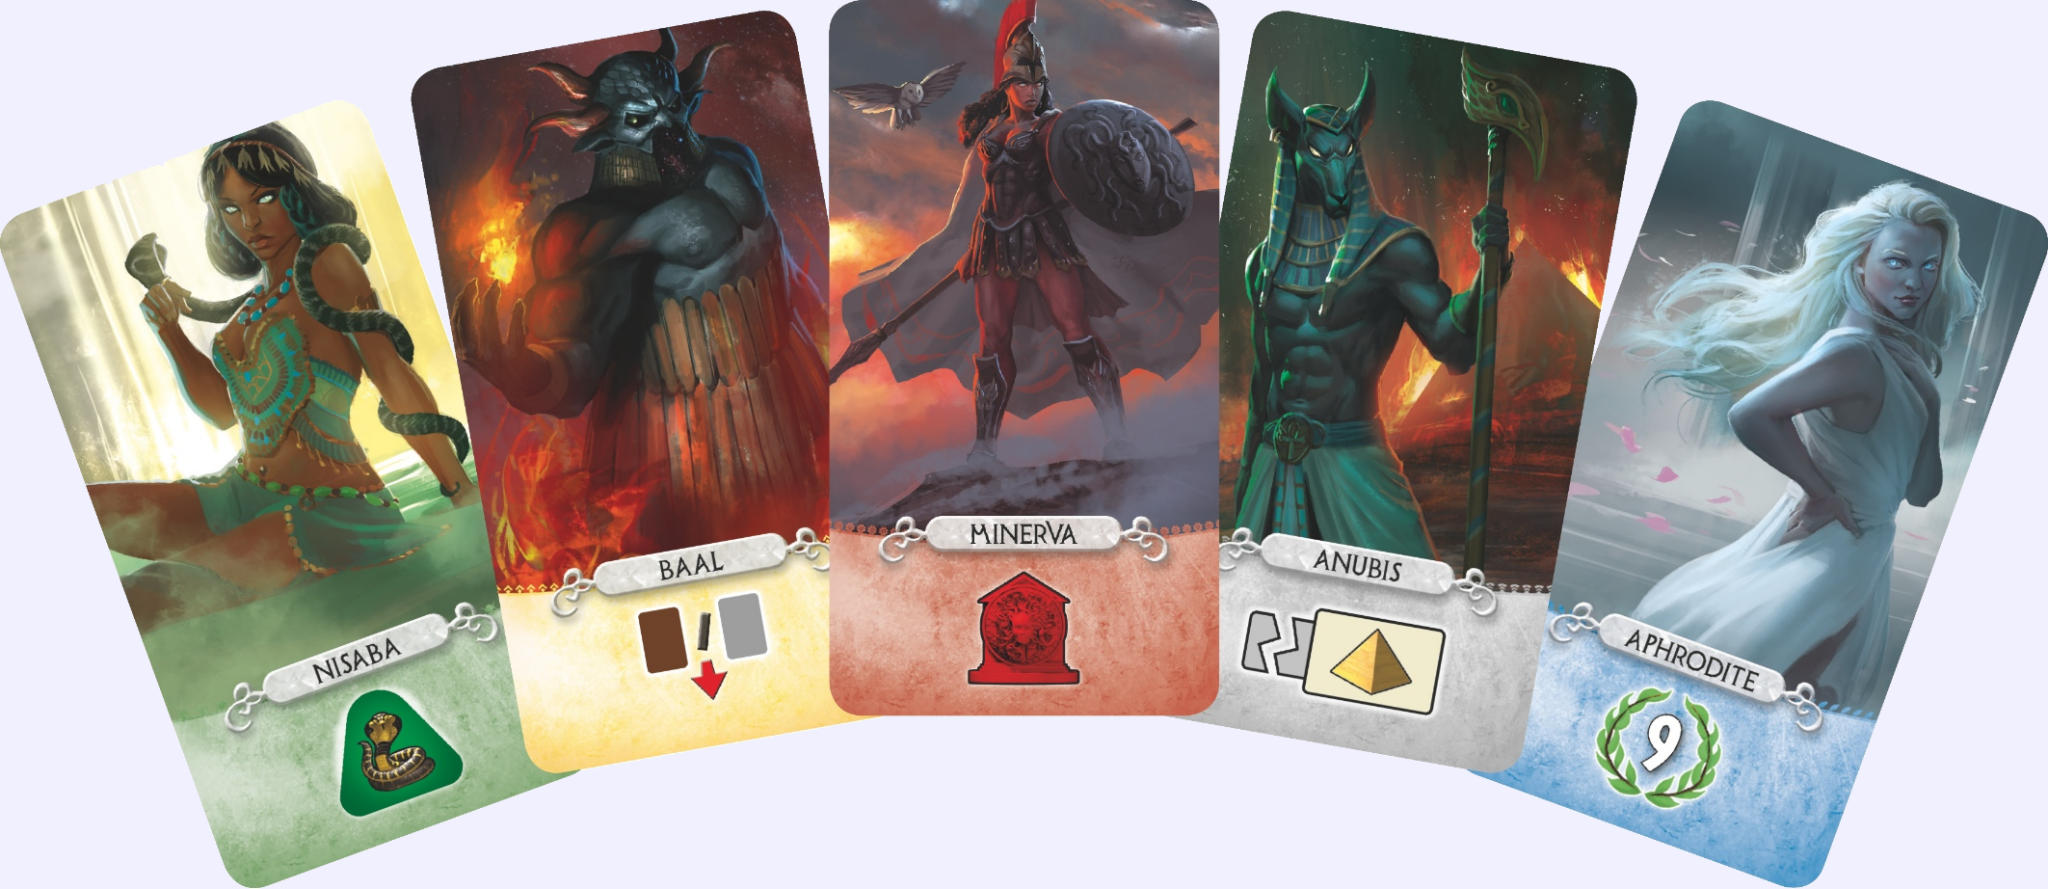 Image result for 7 wonders pantheon